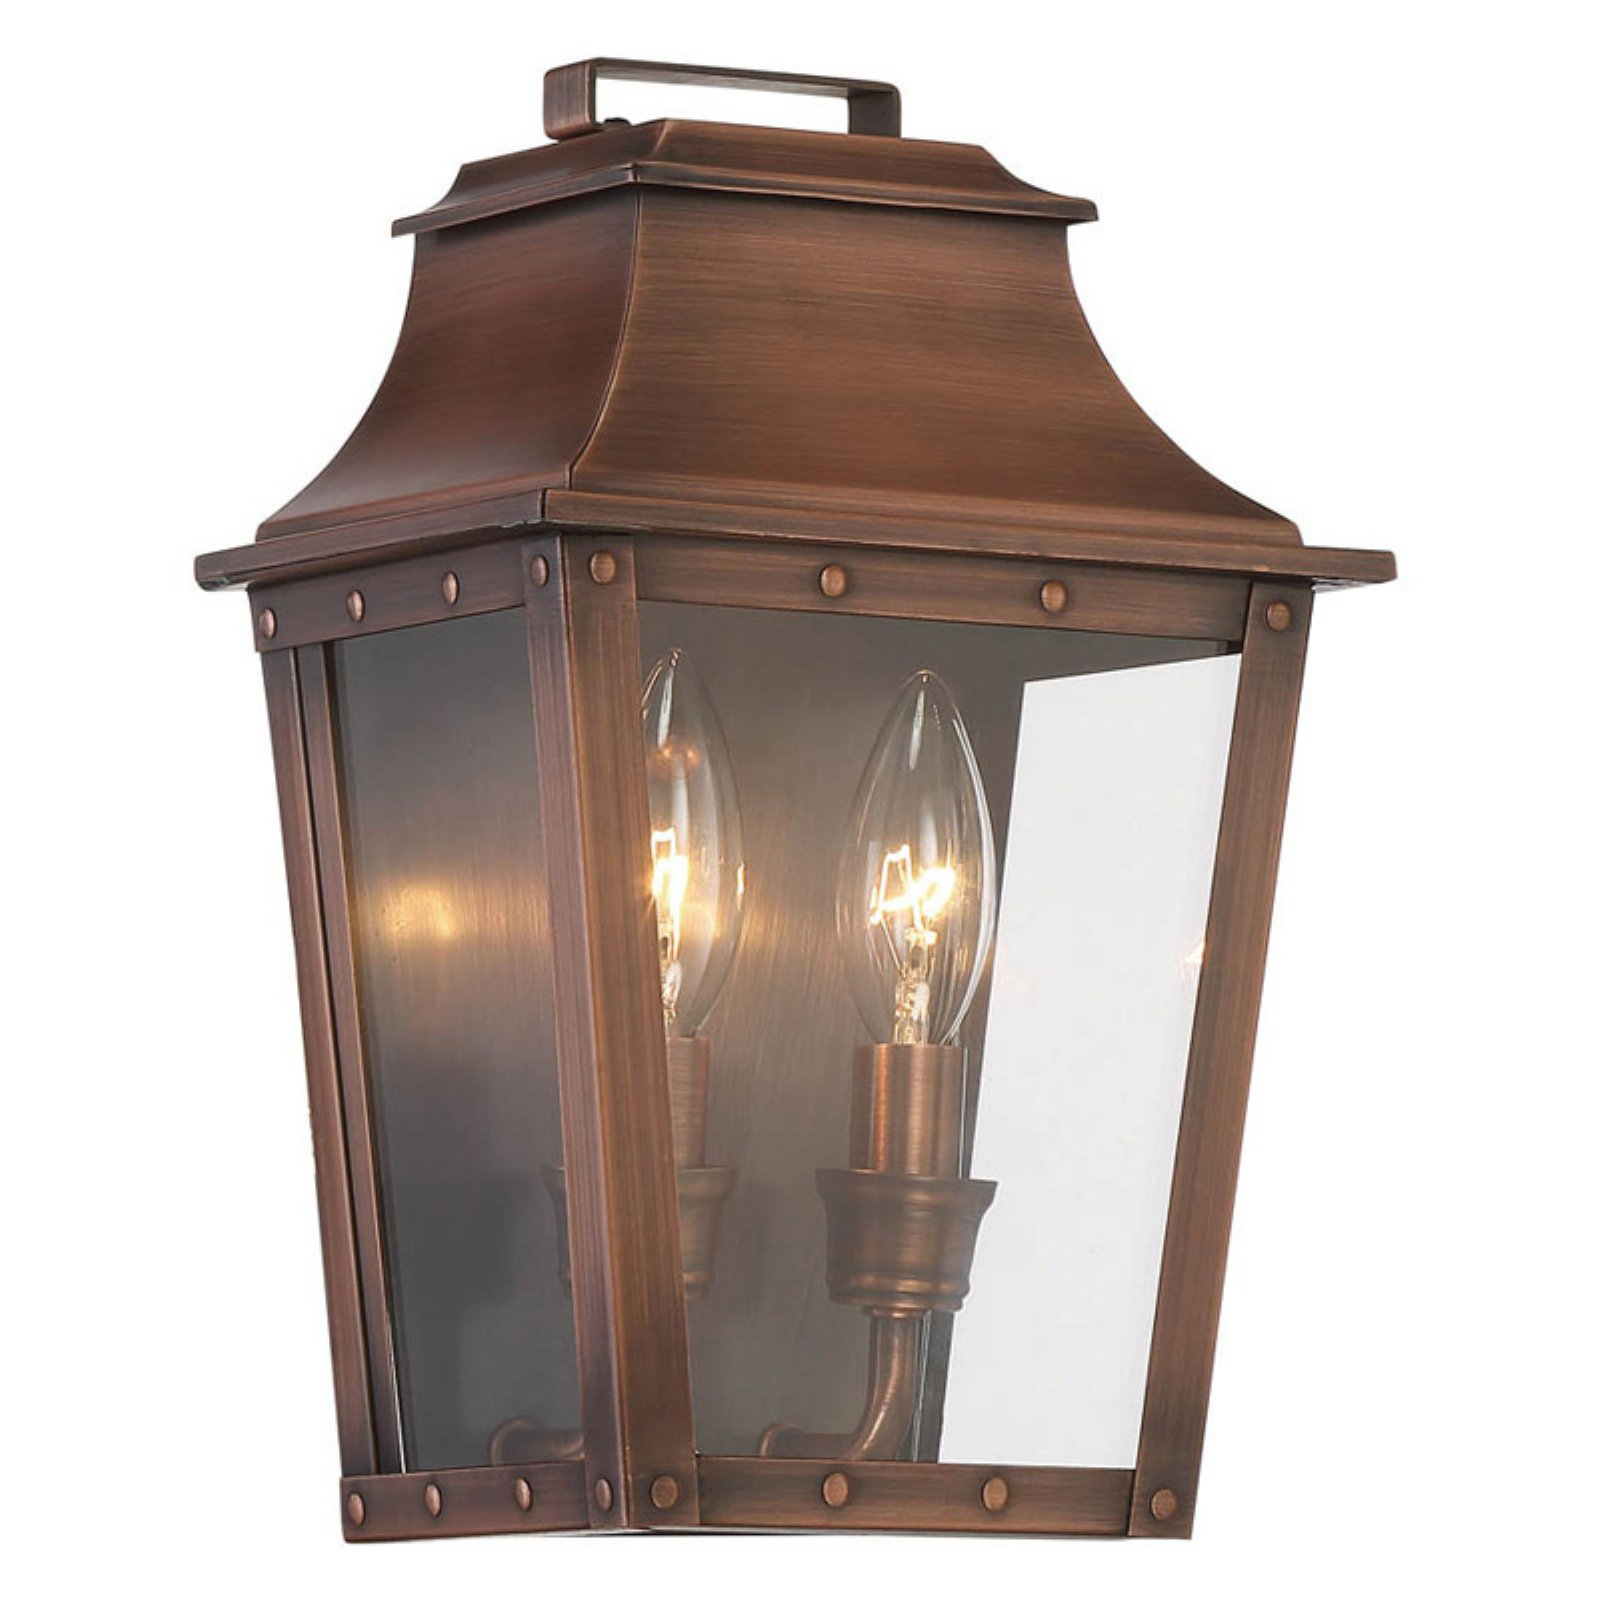 Acclaim Lighting Coventry 2 Light Outdoor Wall Mount Light Fixture